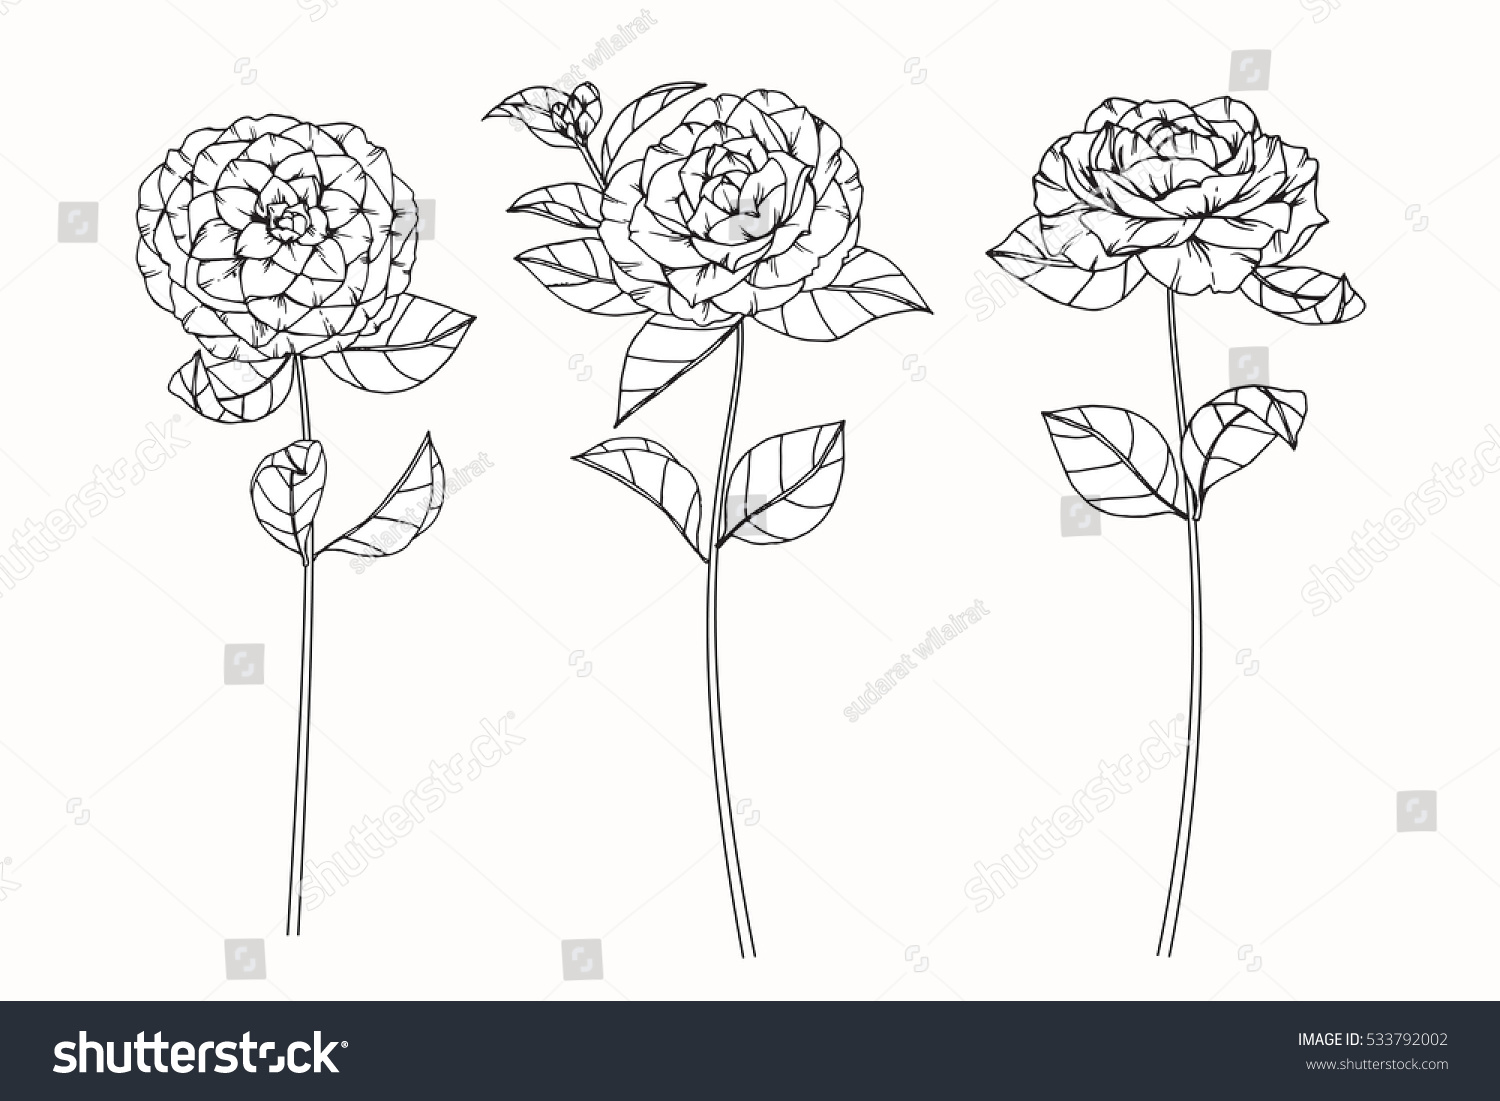 Camellia Flower Line Drawing : Collection set camellia flower by hand stock vector